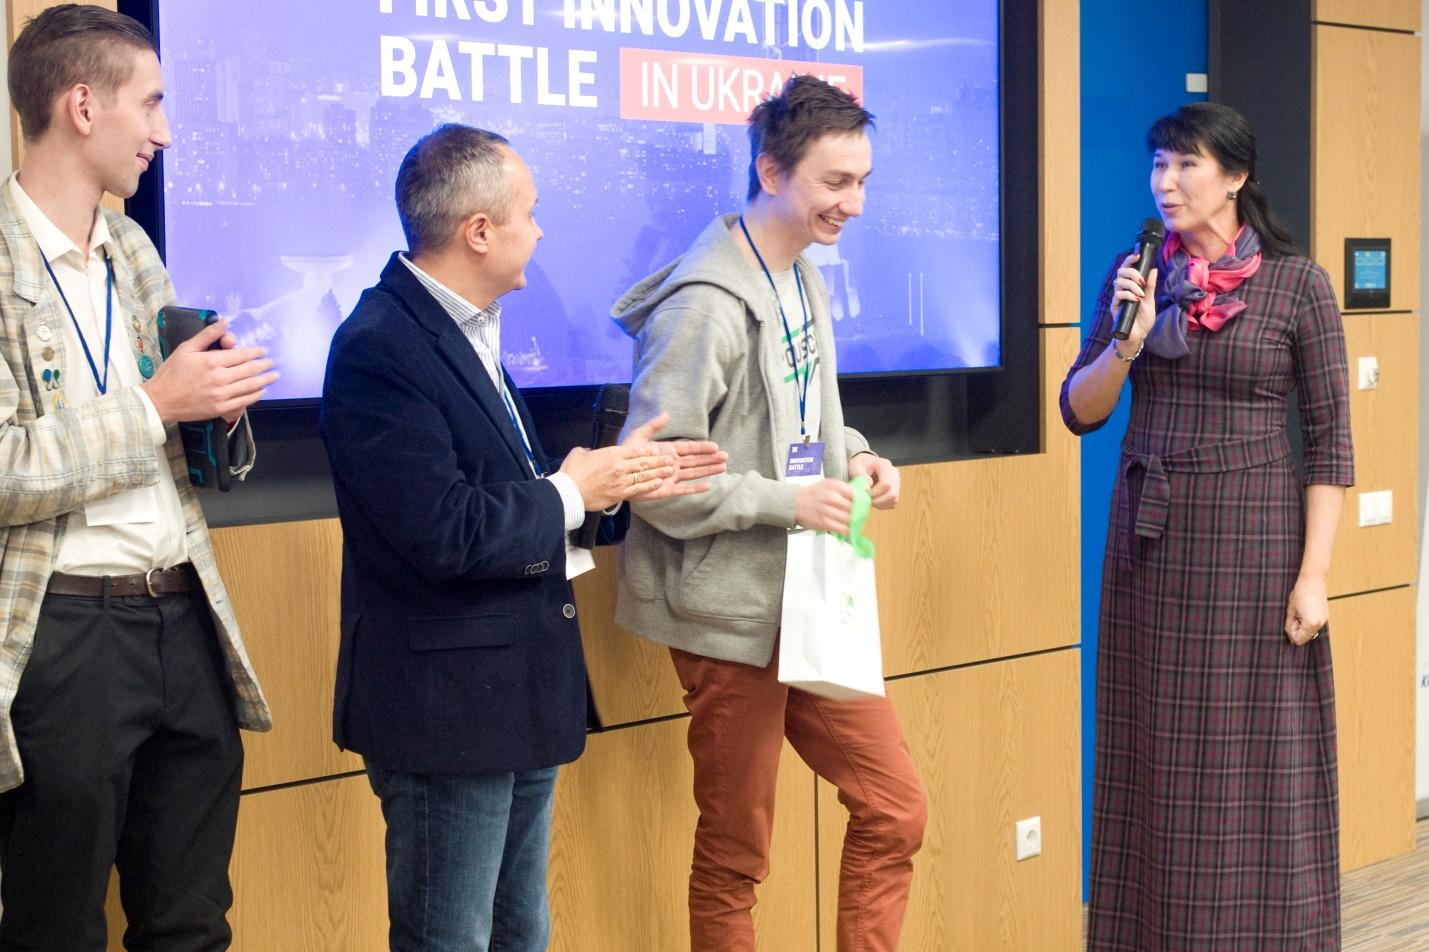 C:\Users\User\Desktop\1-IB\Innovation Battle 28Feb19\DSC06347.jpg